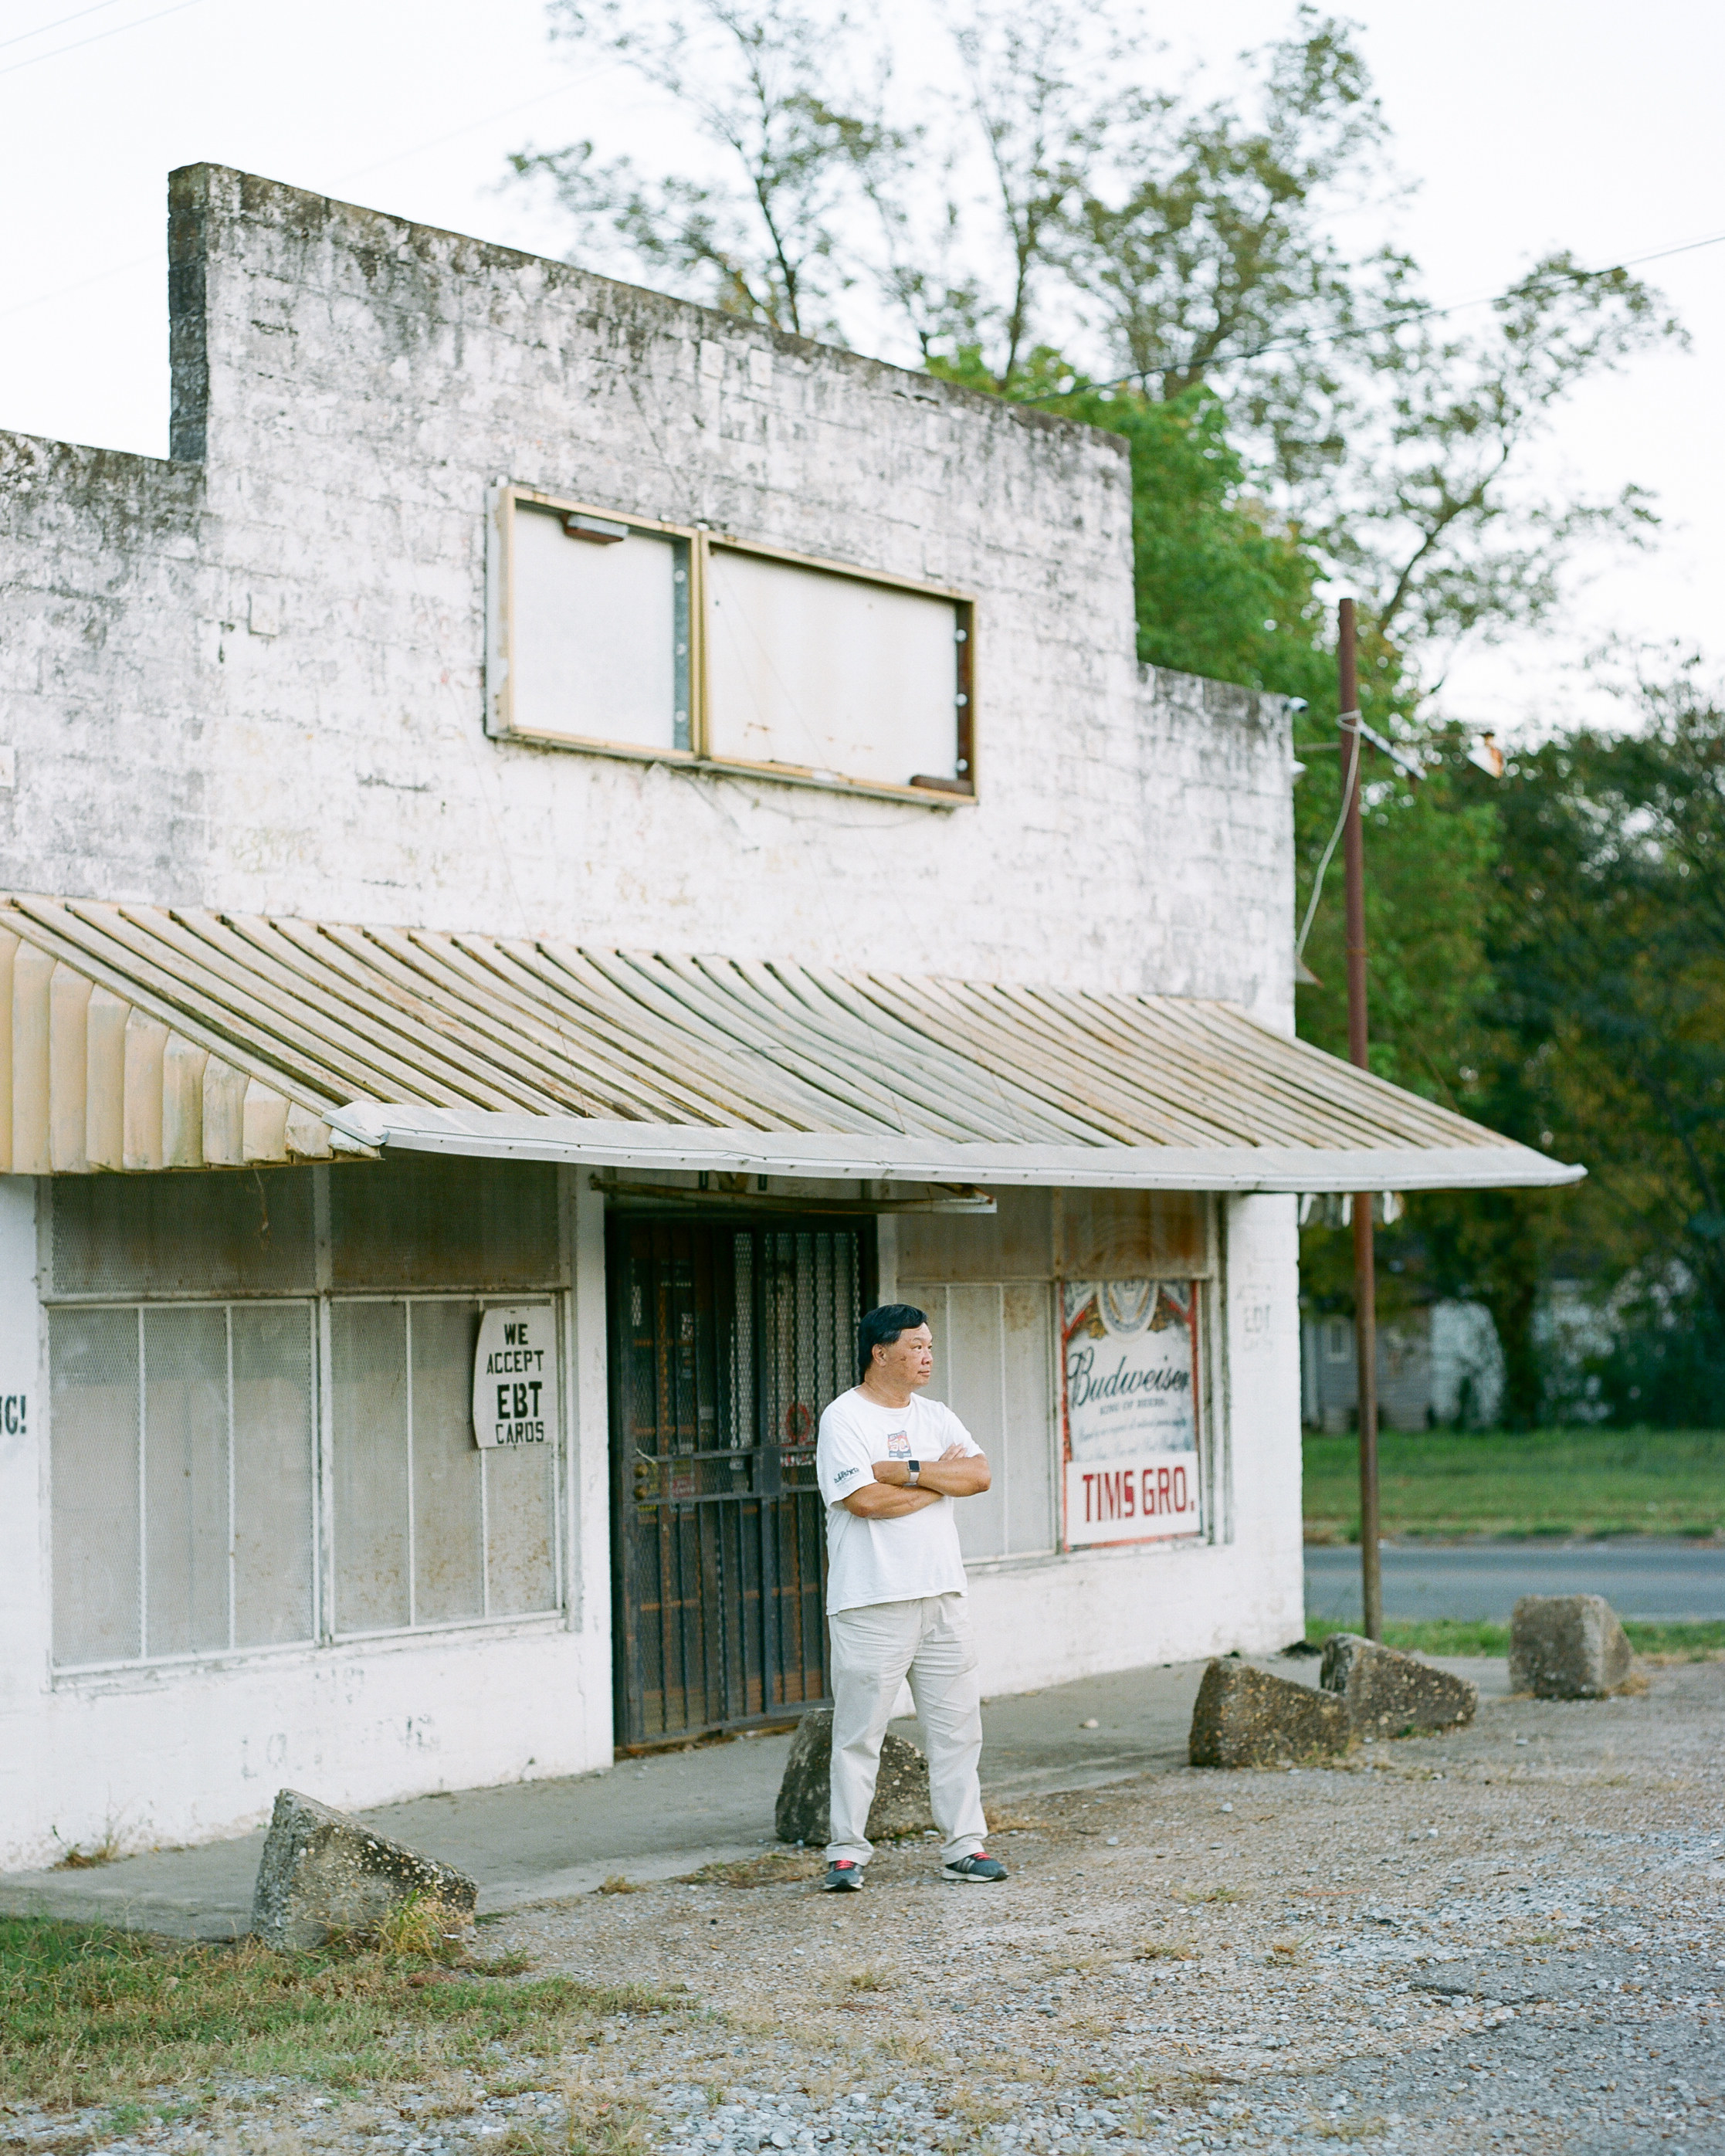 A man stands in front of an abandoned storefront